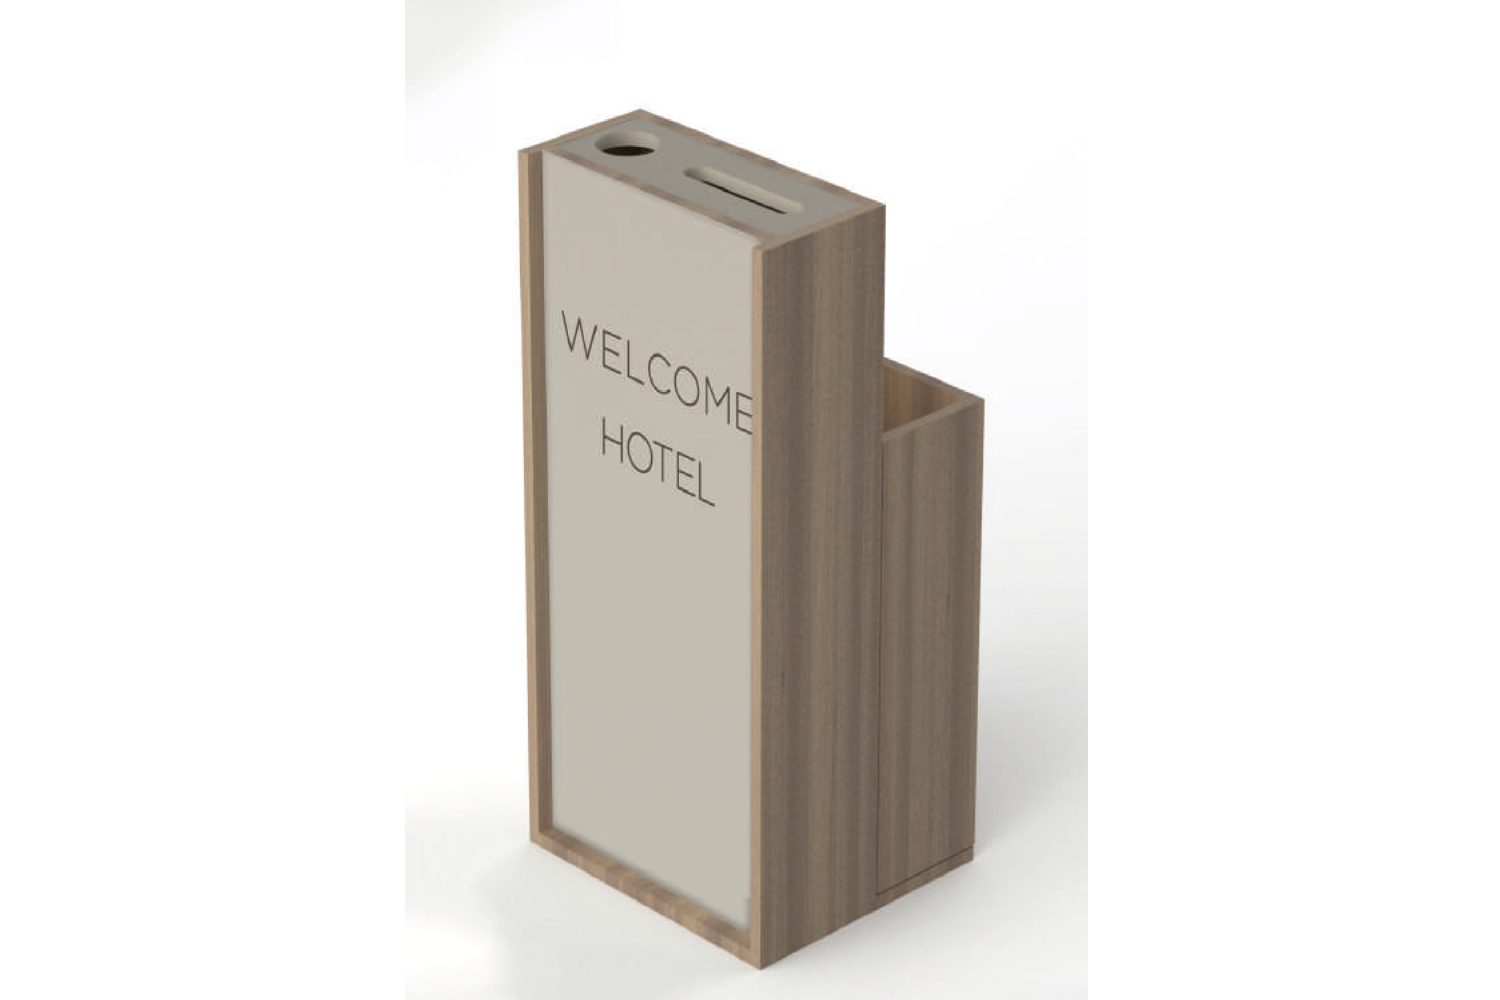 dispensadorwelcom-hotel-1500x1000